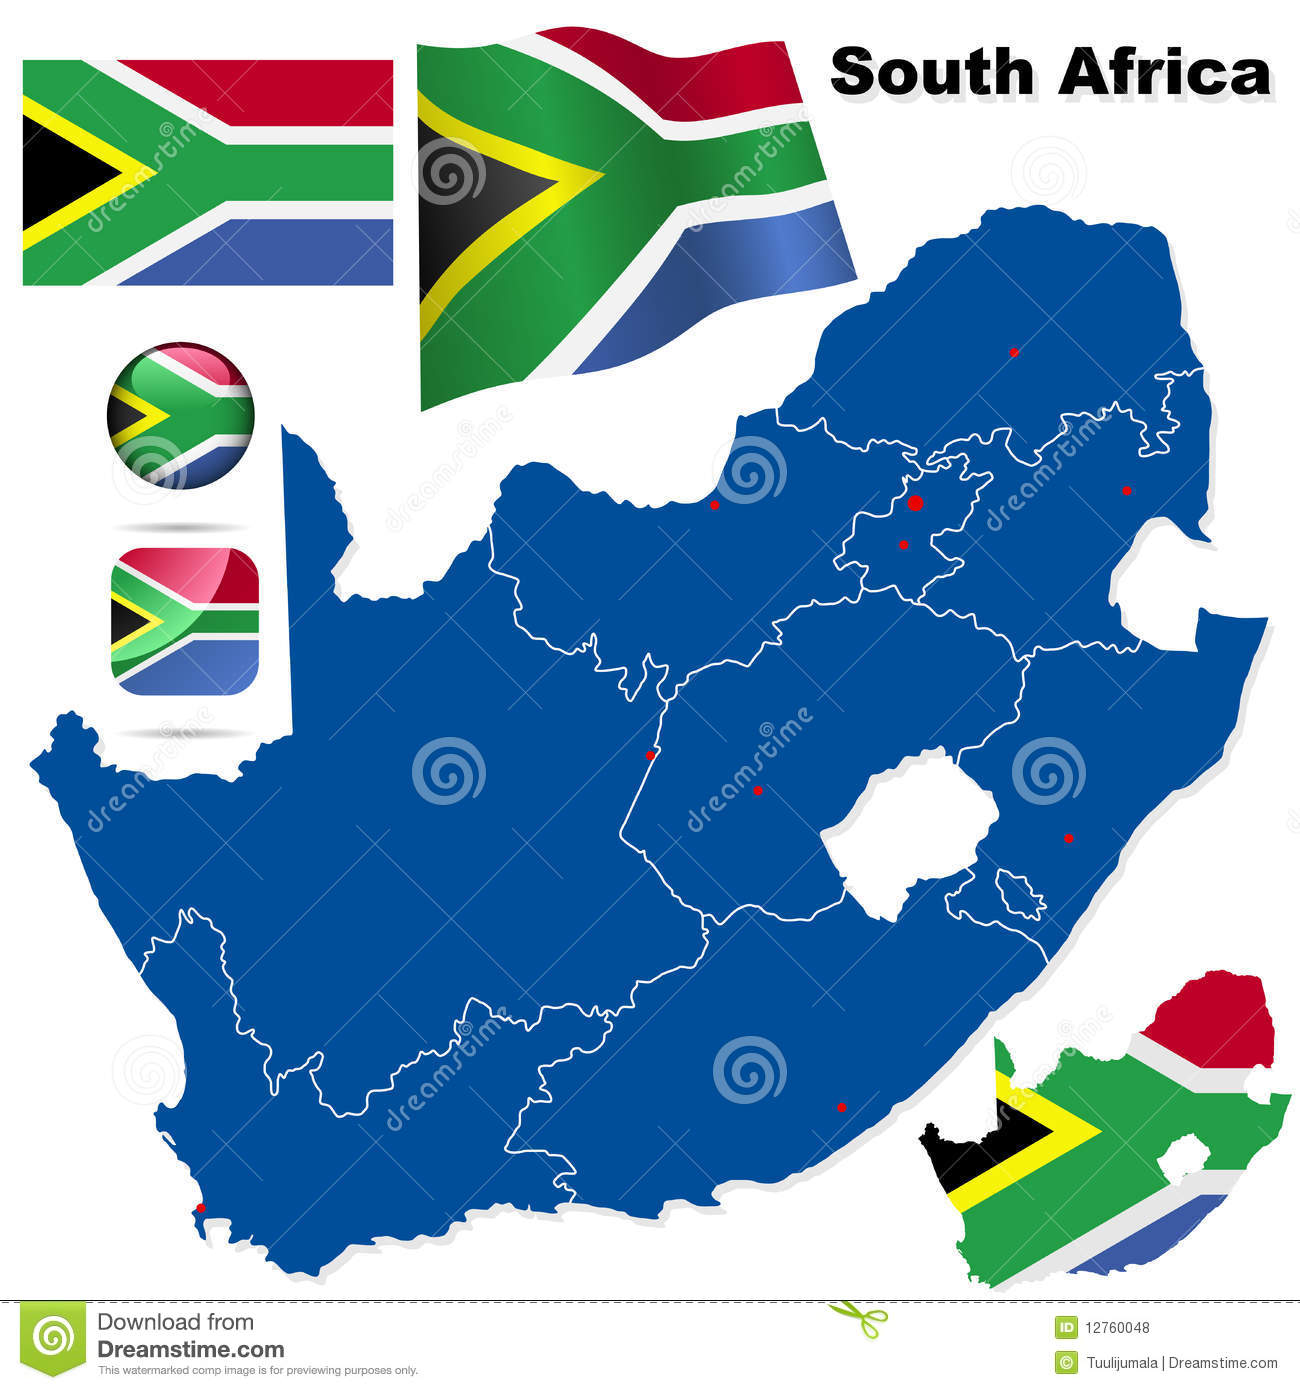 South Africa vector set.